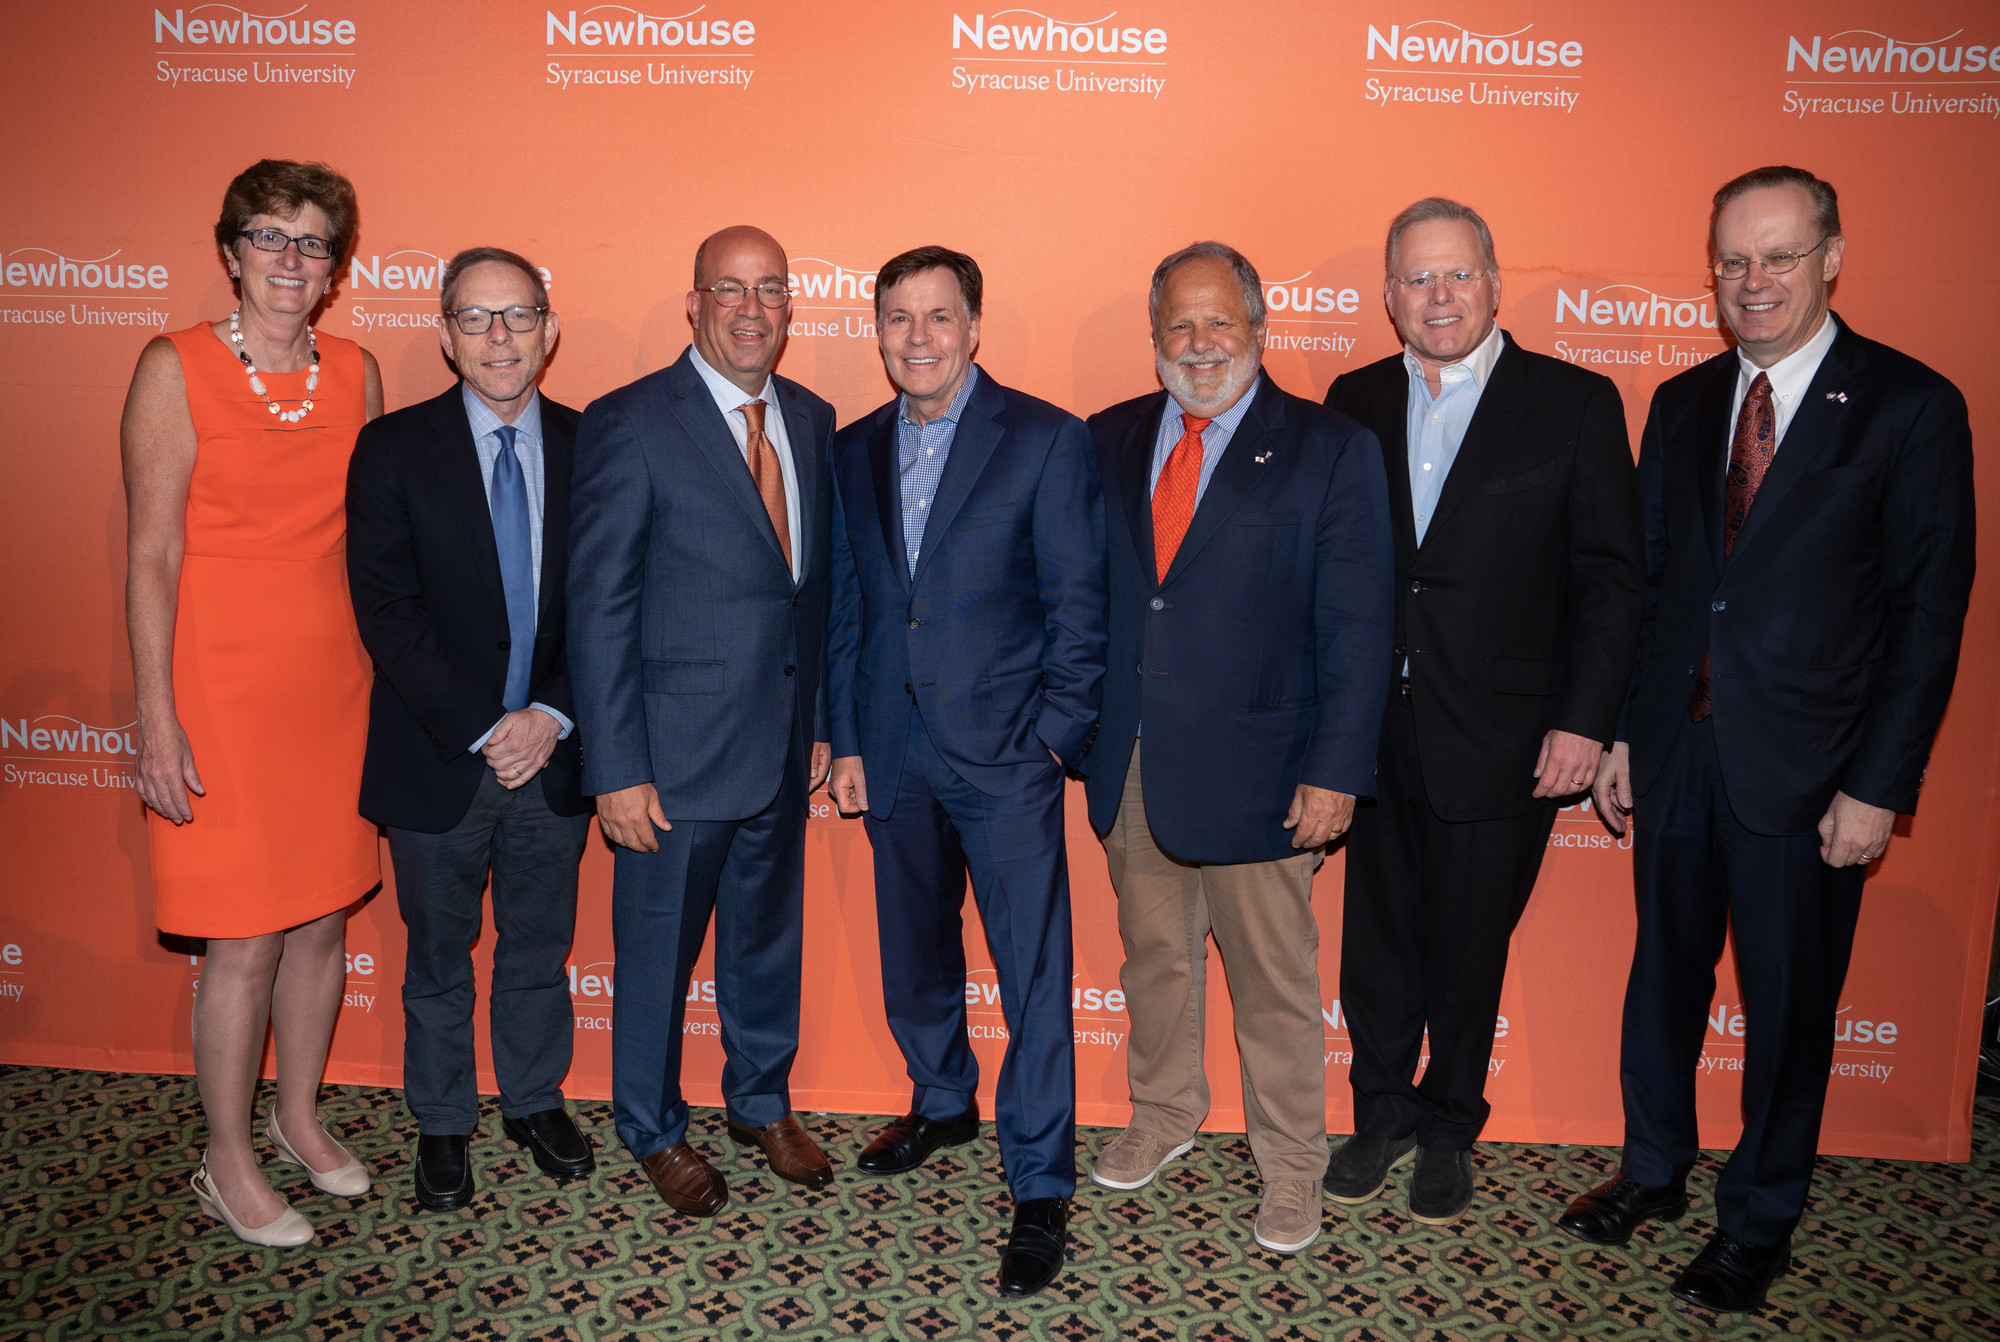 Amy Falkner, Sandy Montag, Jeff Zucker, Bob Costas, Larry Kramer, David Zaslav and Kent Syverud